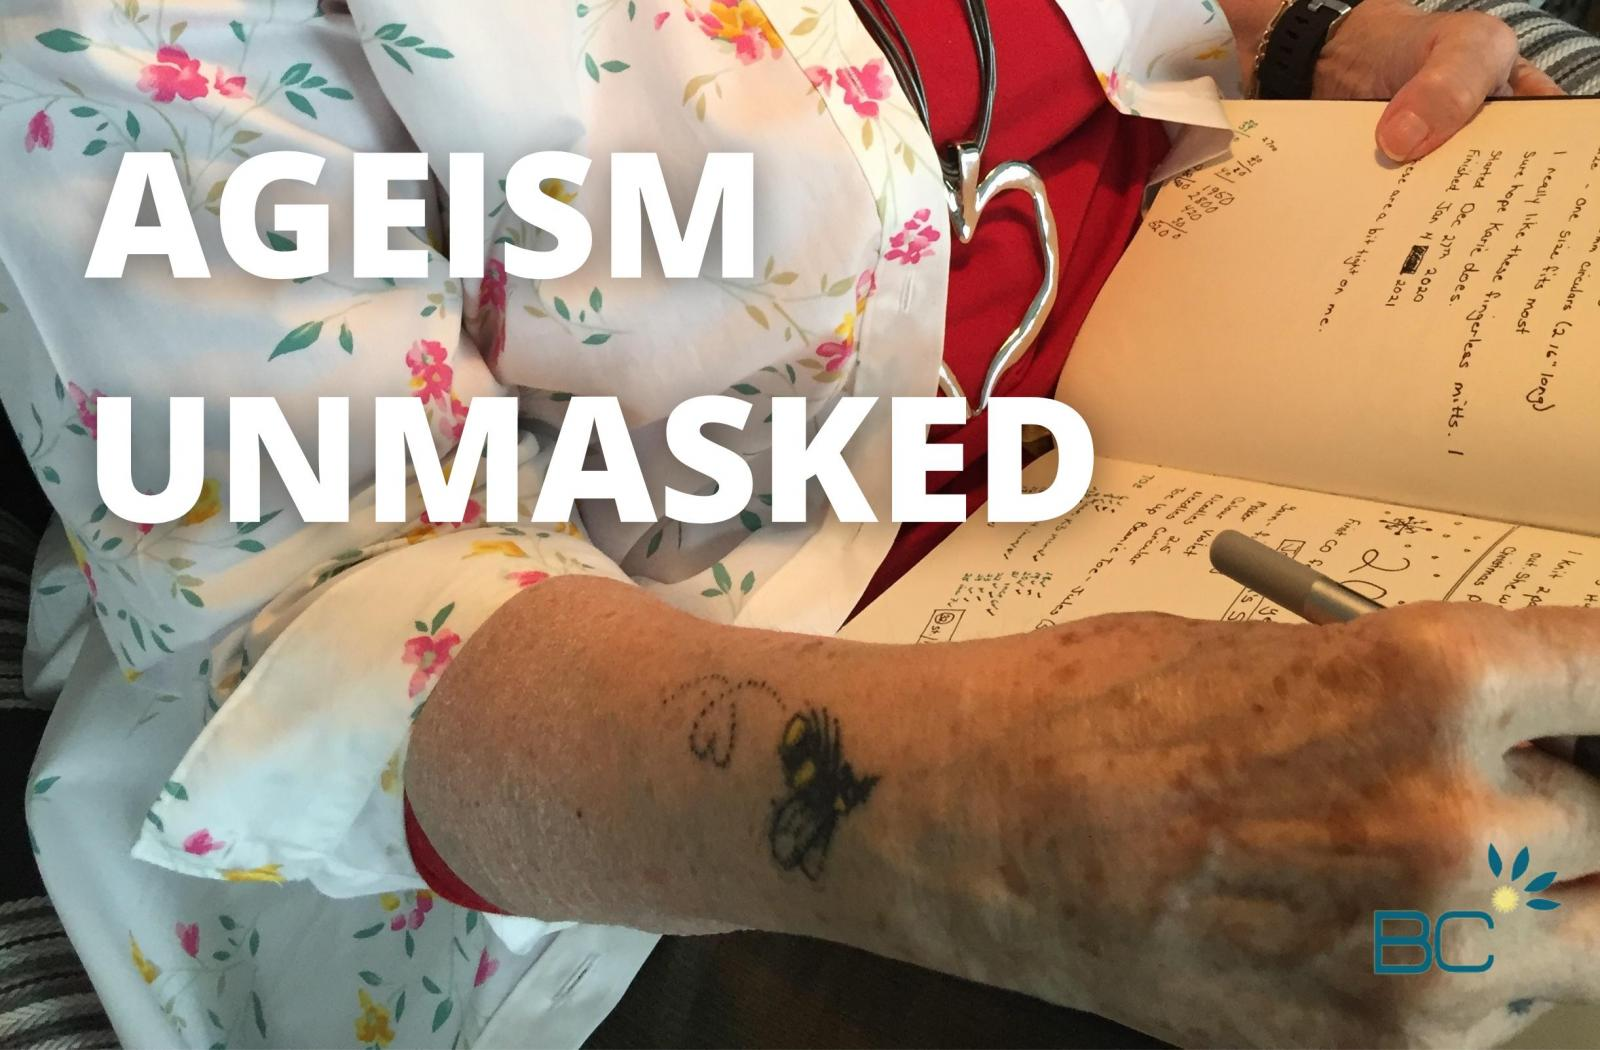 Ageism Unmasked Post